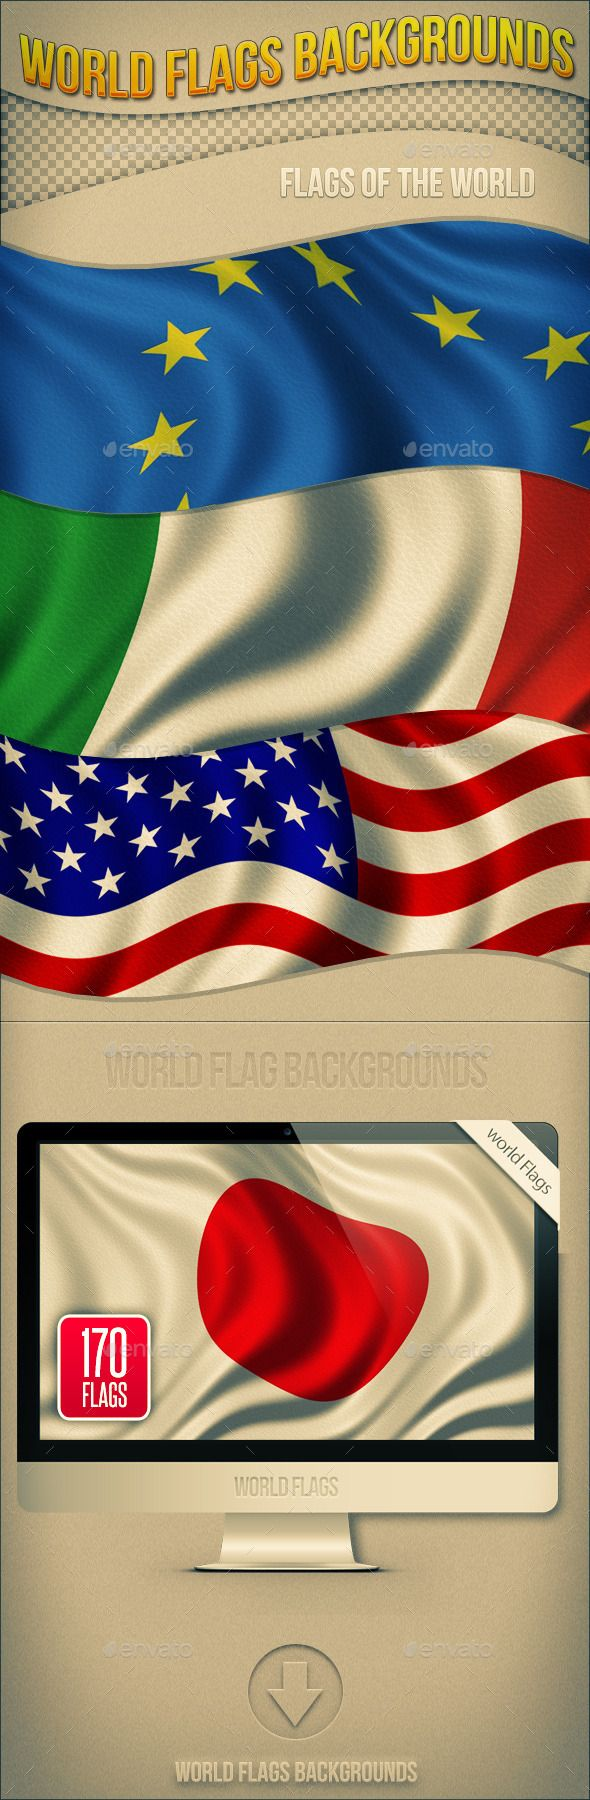 Pics photos desk with flag in background photographic print by - World Flags Backgrounds